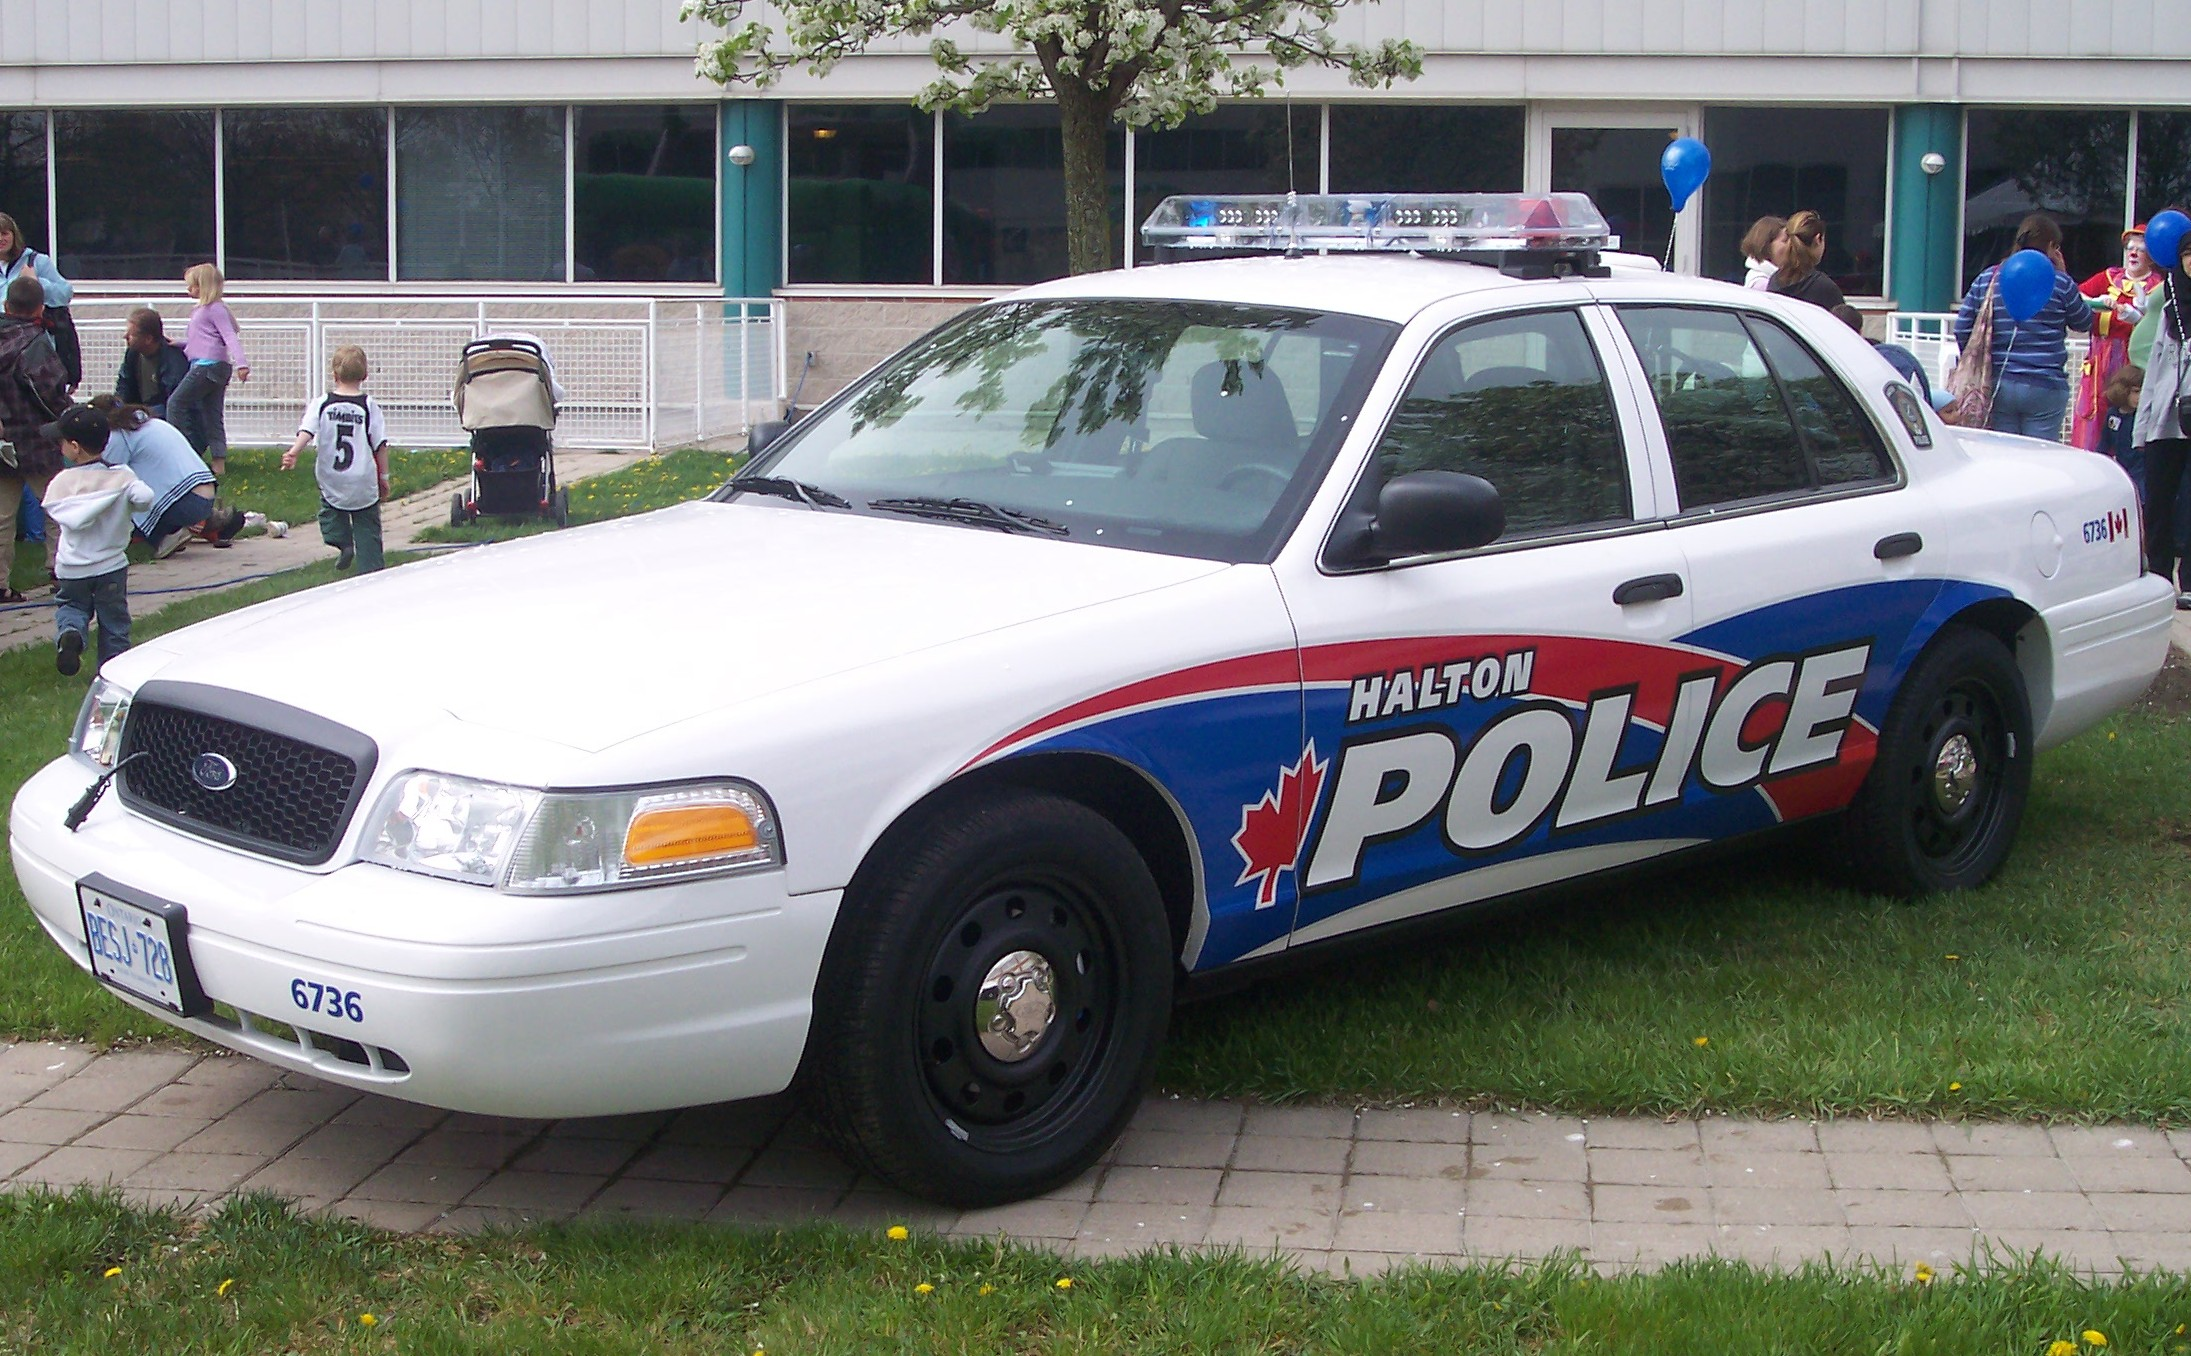 File:Halton Police Car.JPG  Wikimedia Commons